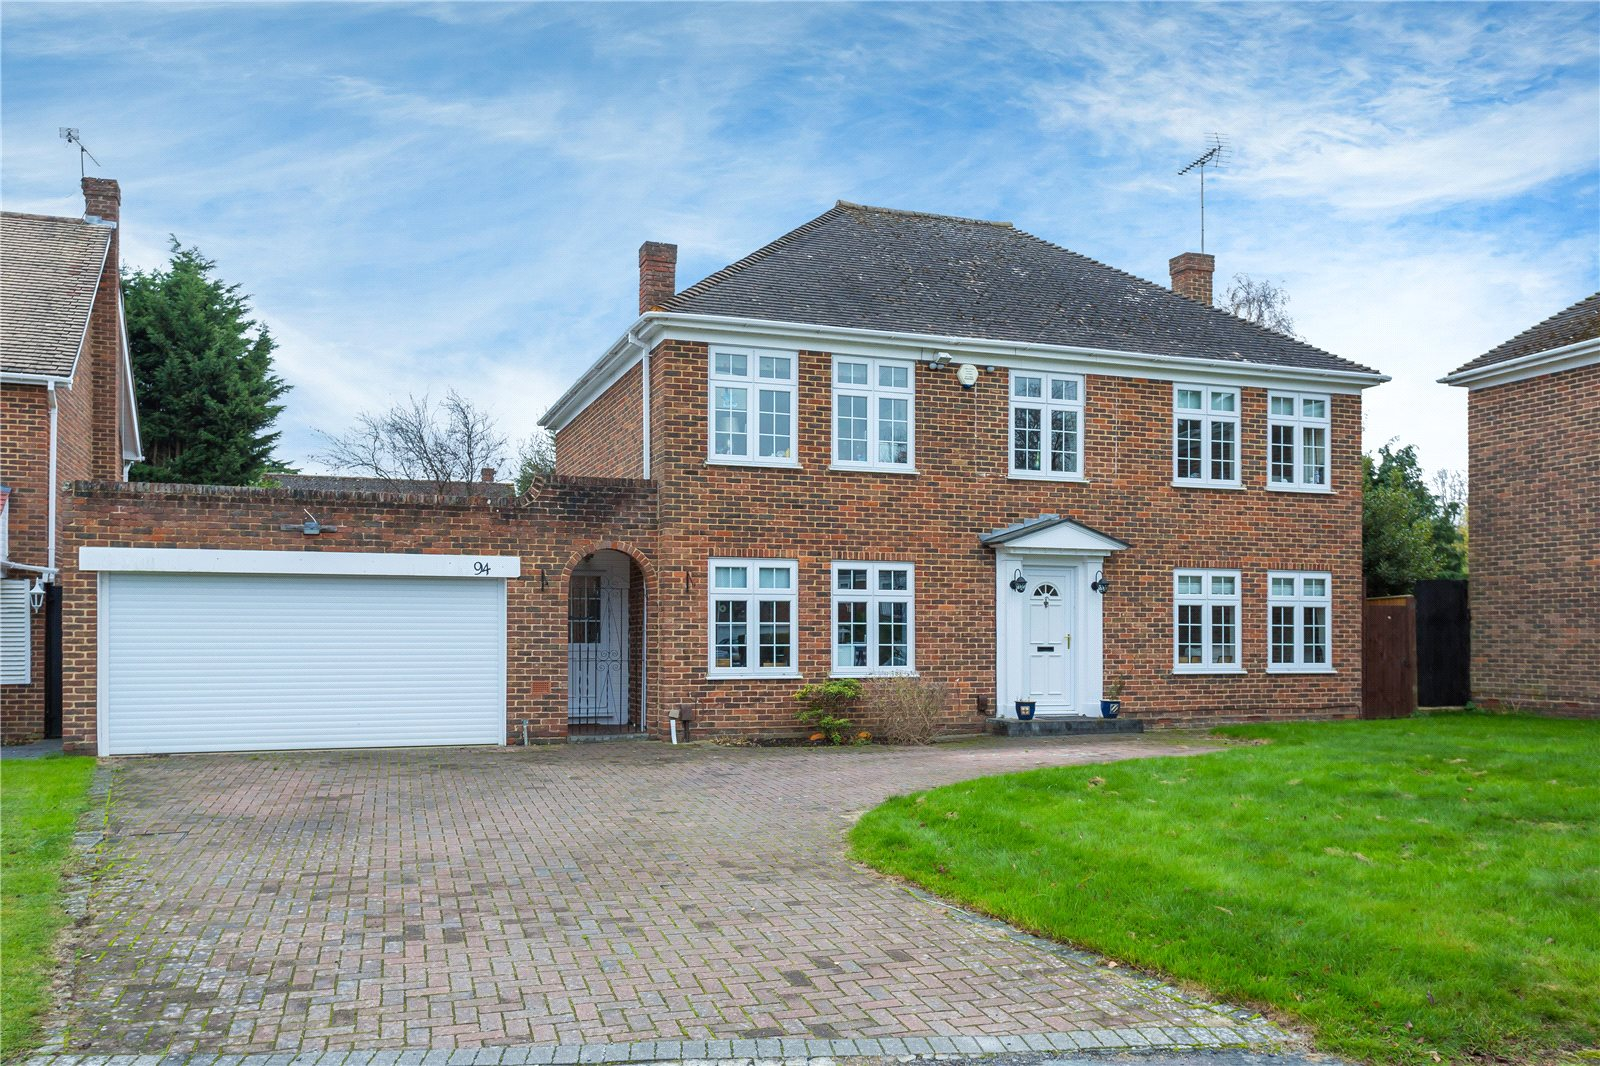 Maison unifamiliale pour l Vente à The Fairway, Burnham, Berkshire, SL1 Burnham, Angleterre